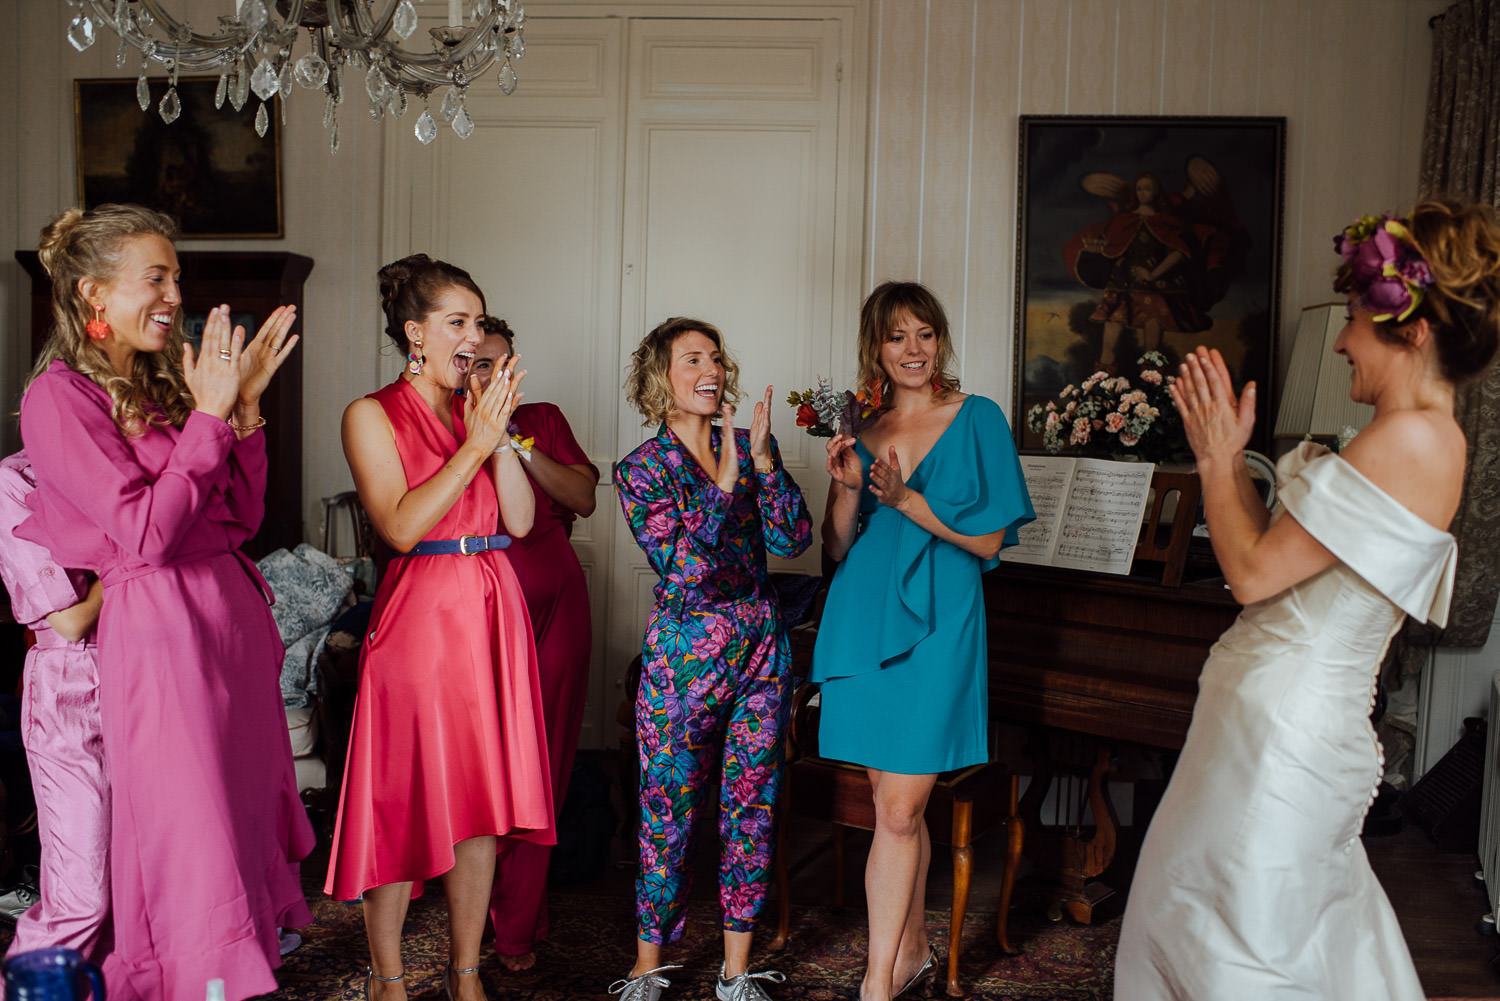 Colourful bridesmaids dresses in Bordeaux Chateau wedding by creative destination wedding photographer the shannons photography